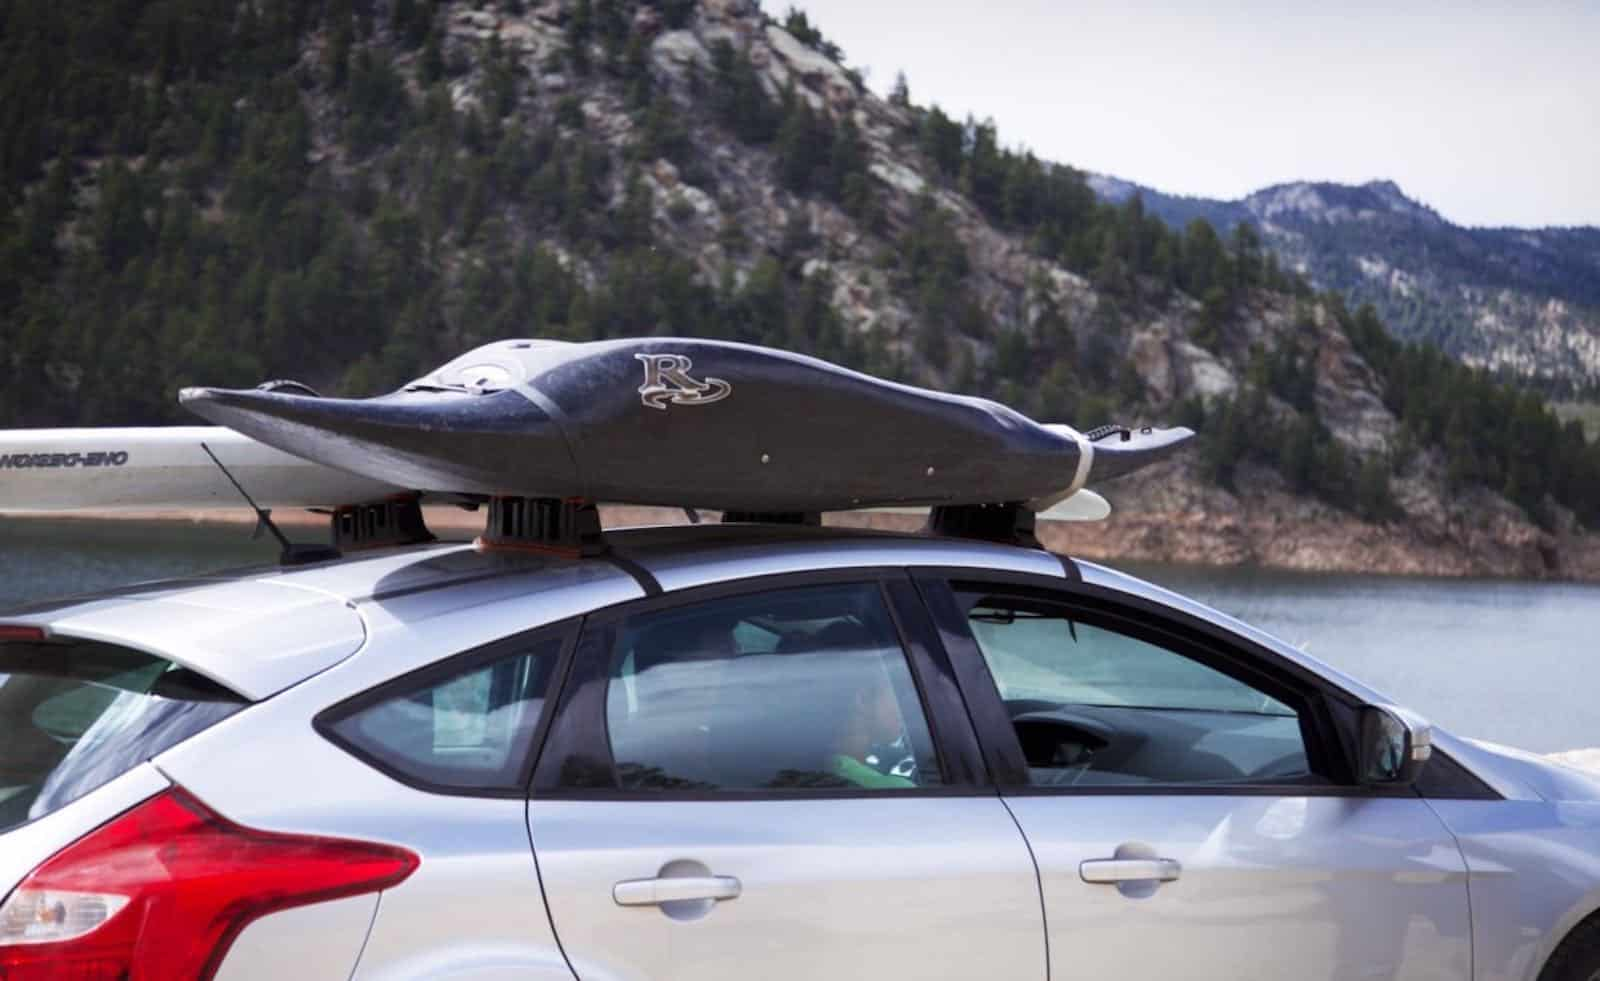 stowaway-portable-roof-rack